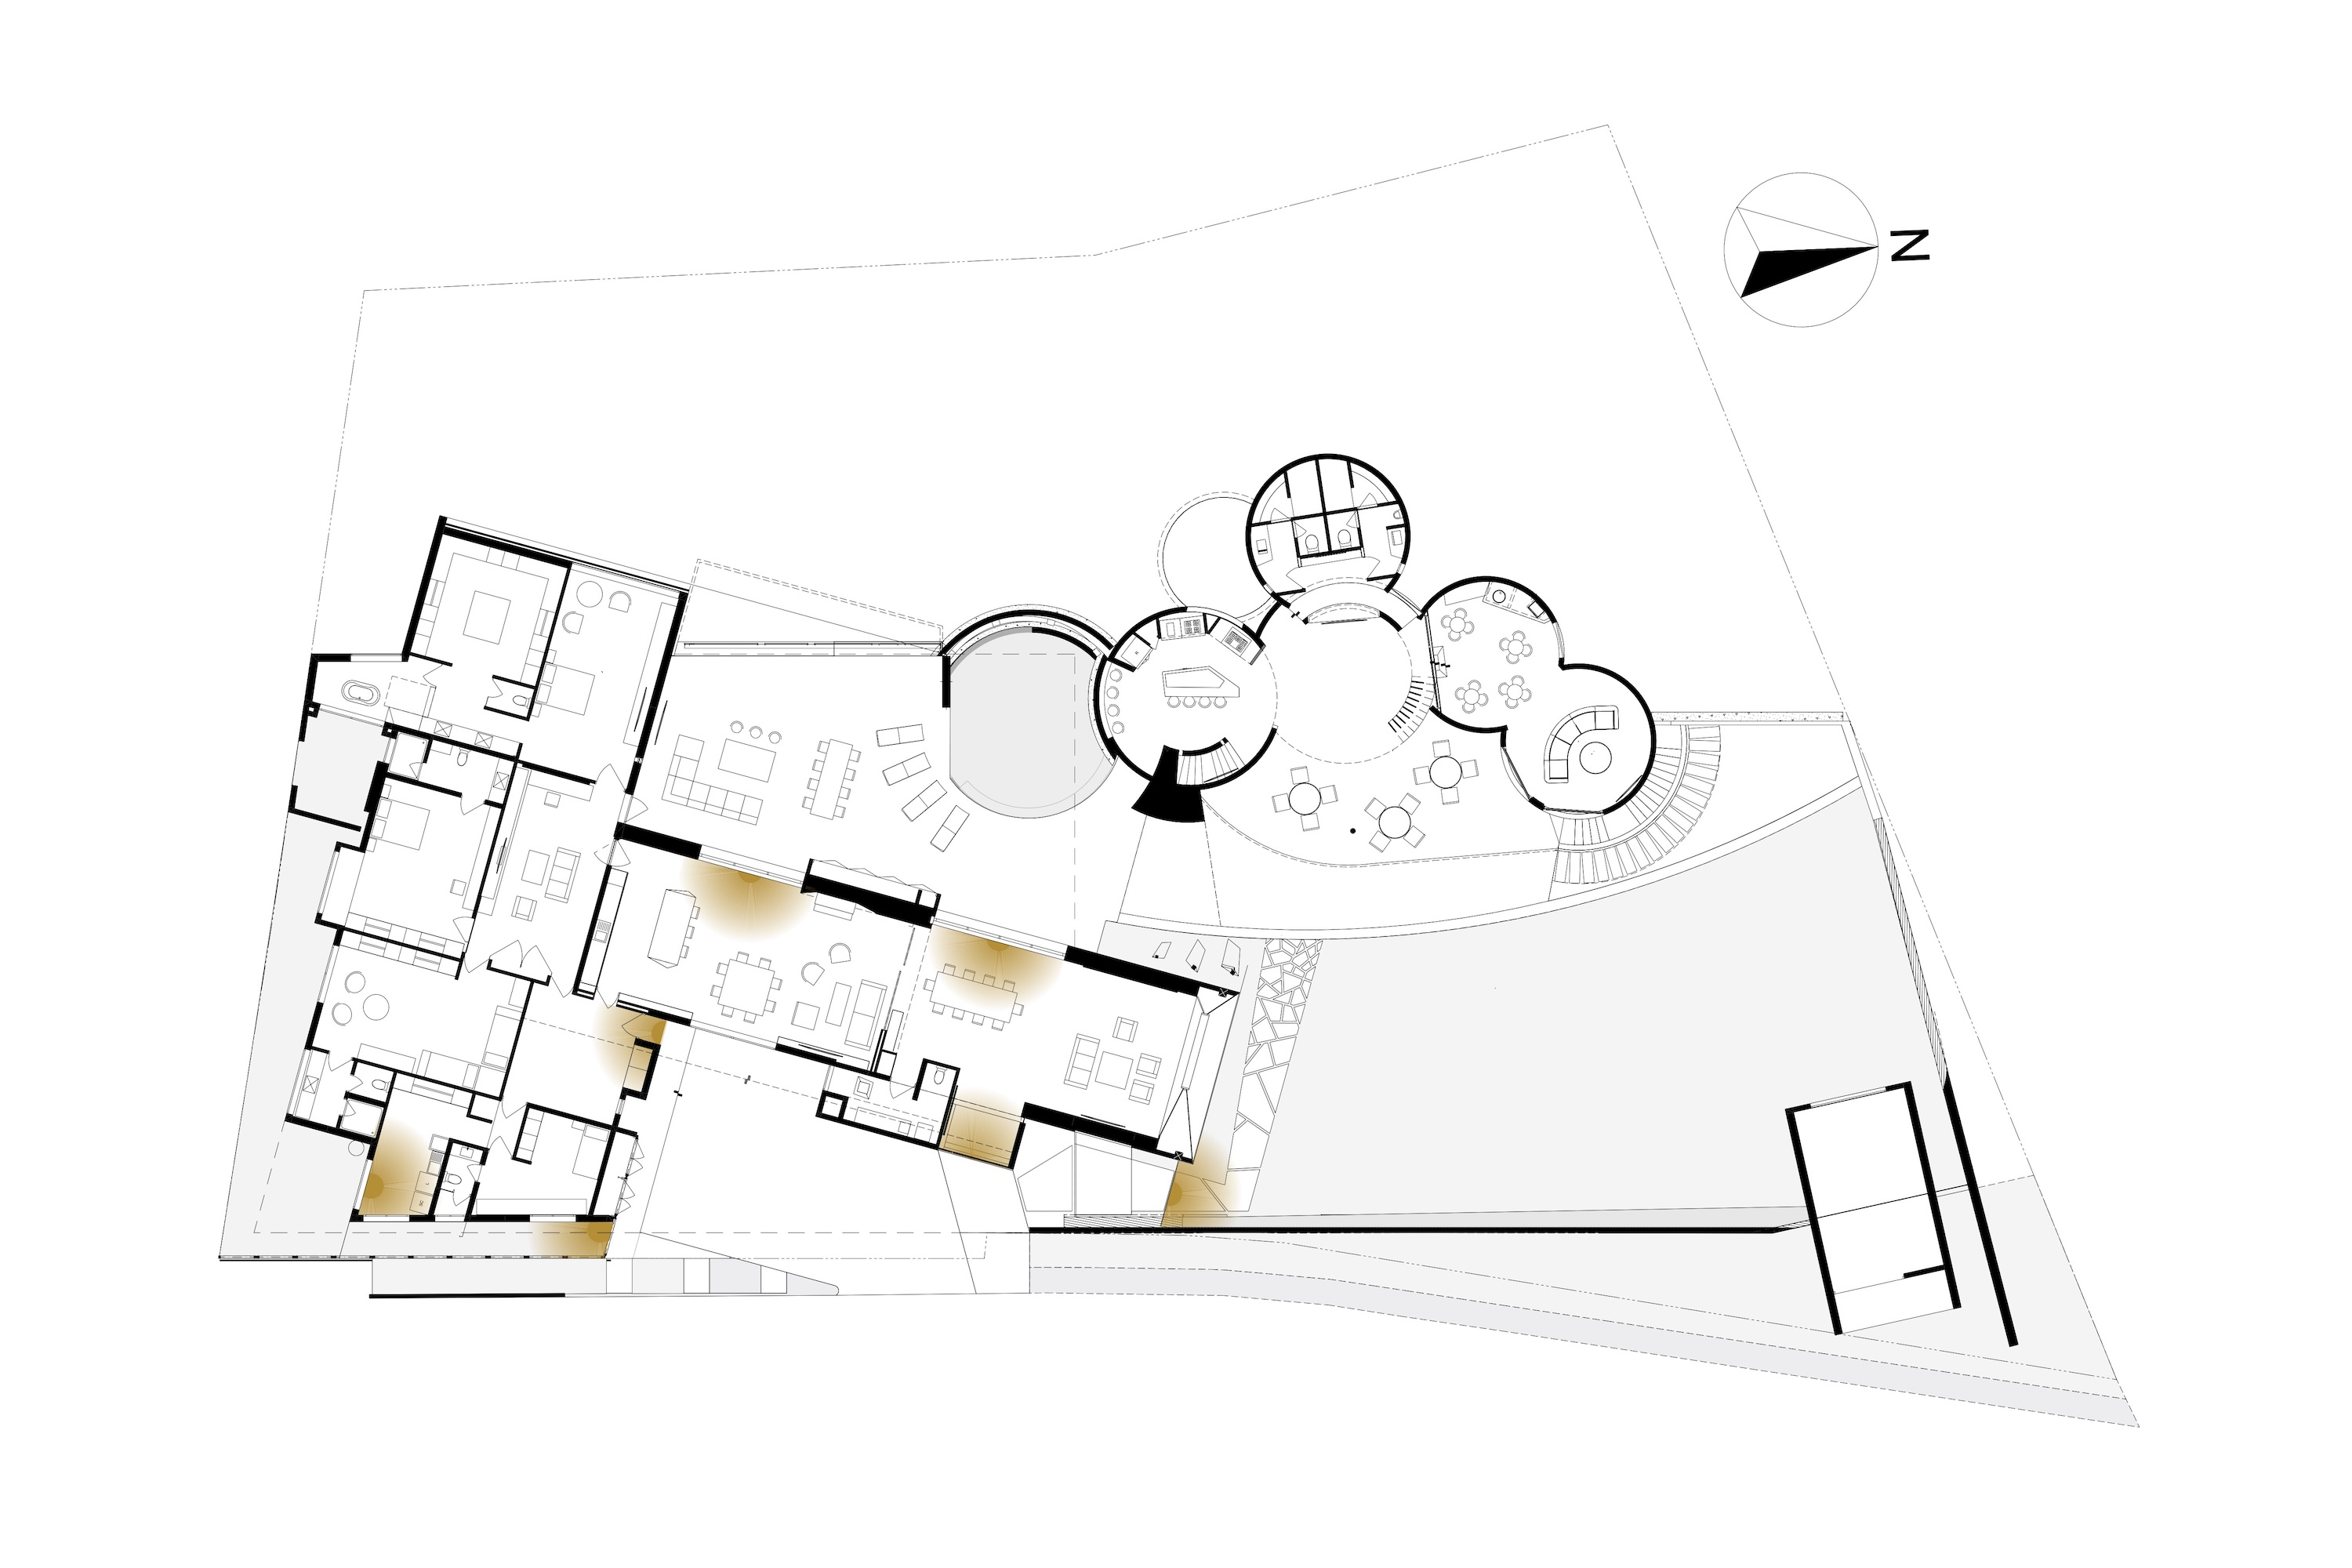 Architectural drawing plan